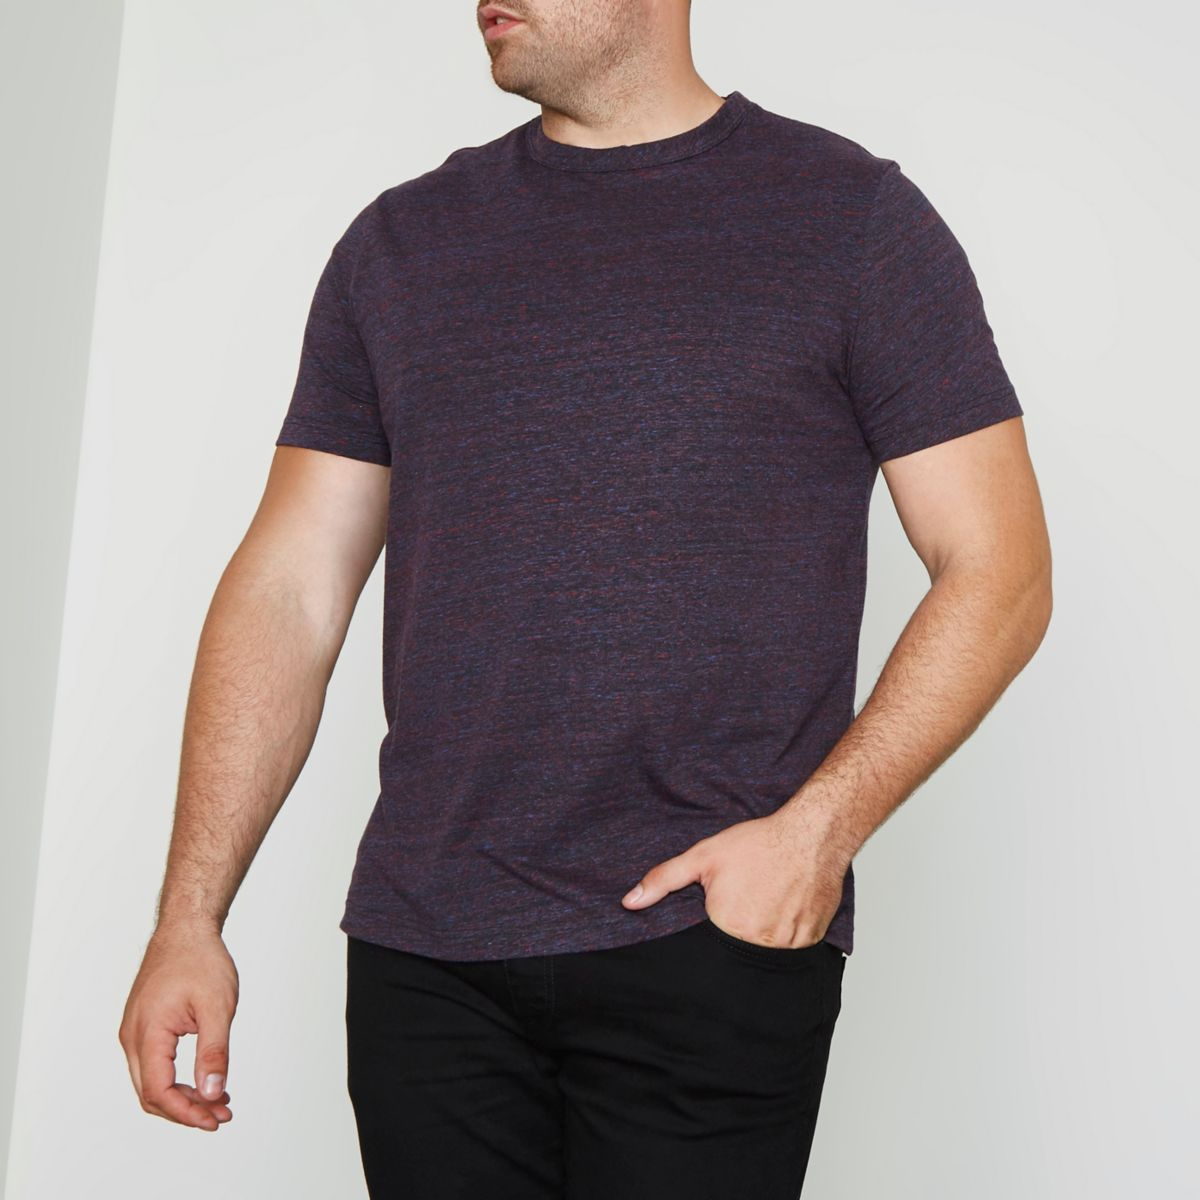 Big and Tall - Donkerrood T-shirt met ronde hals